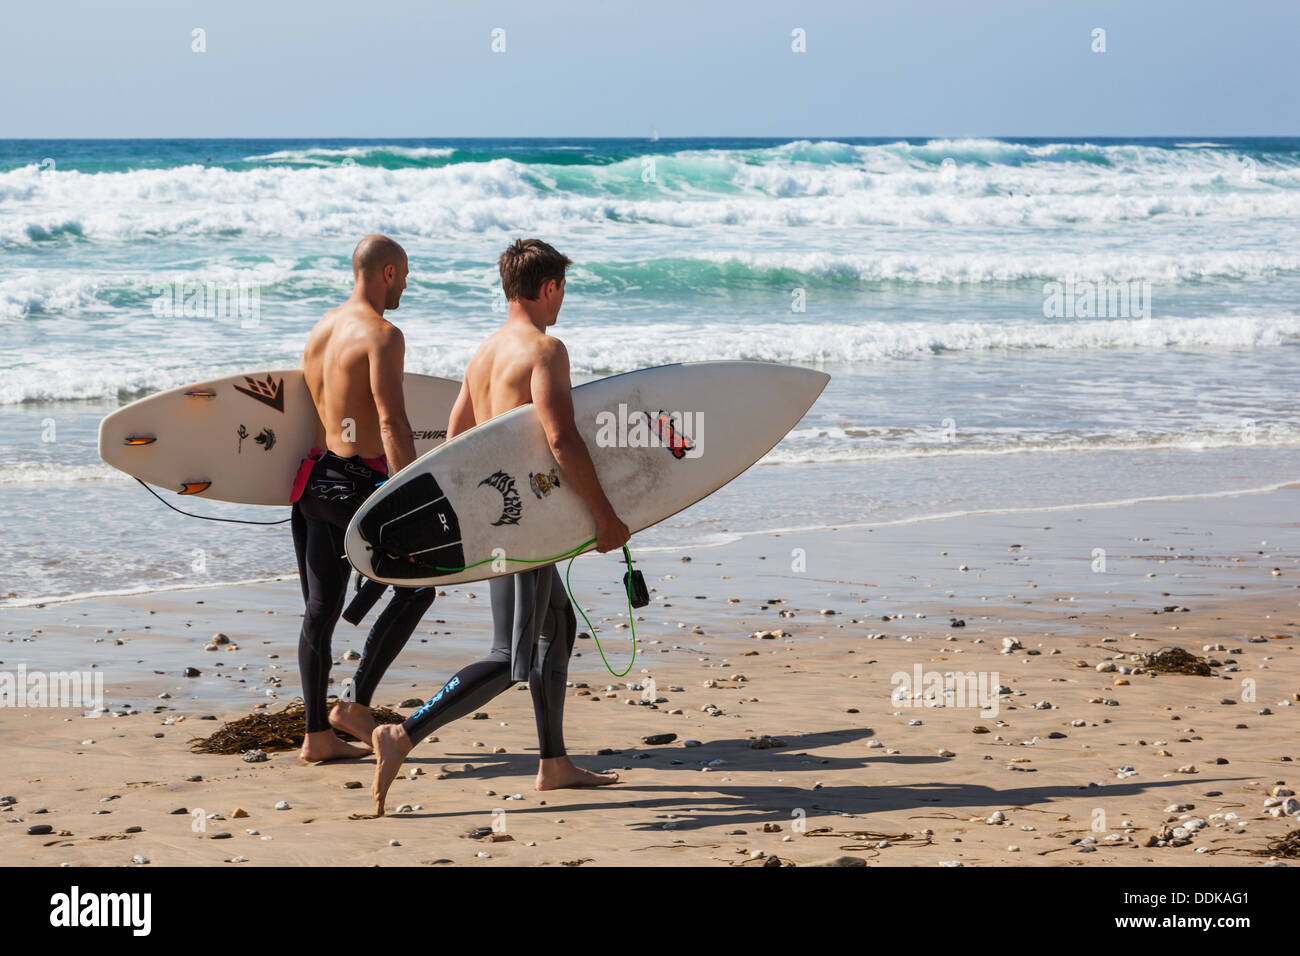 England, Cornwall, Newquay, Fistral Beach, Surfers Walking on Beach - Stock Image